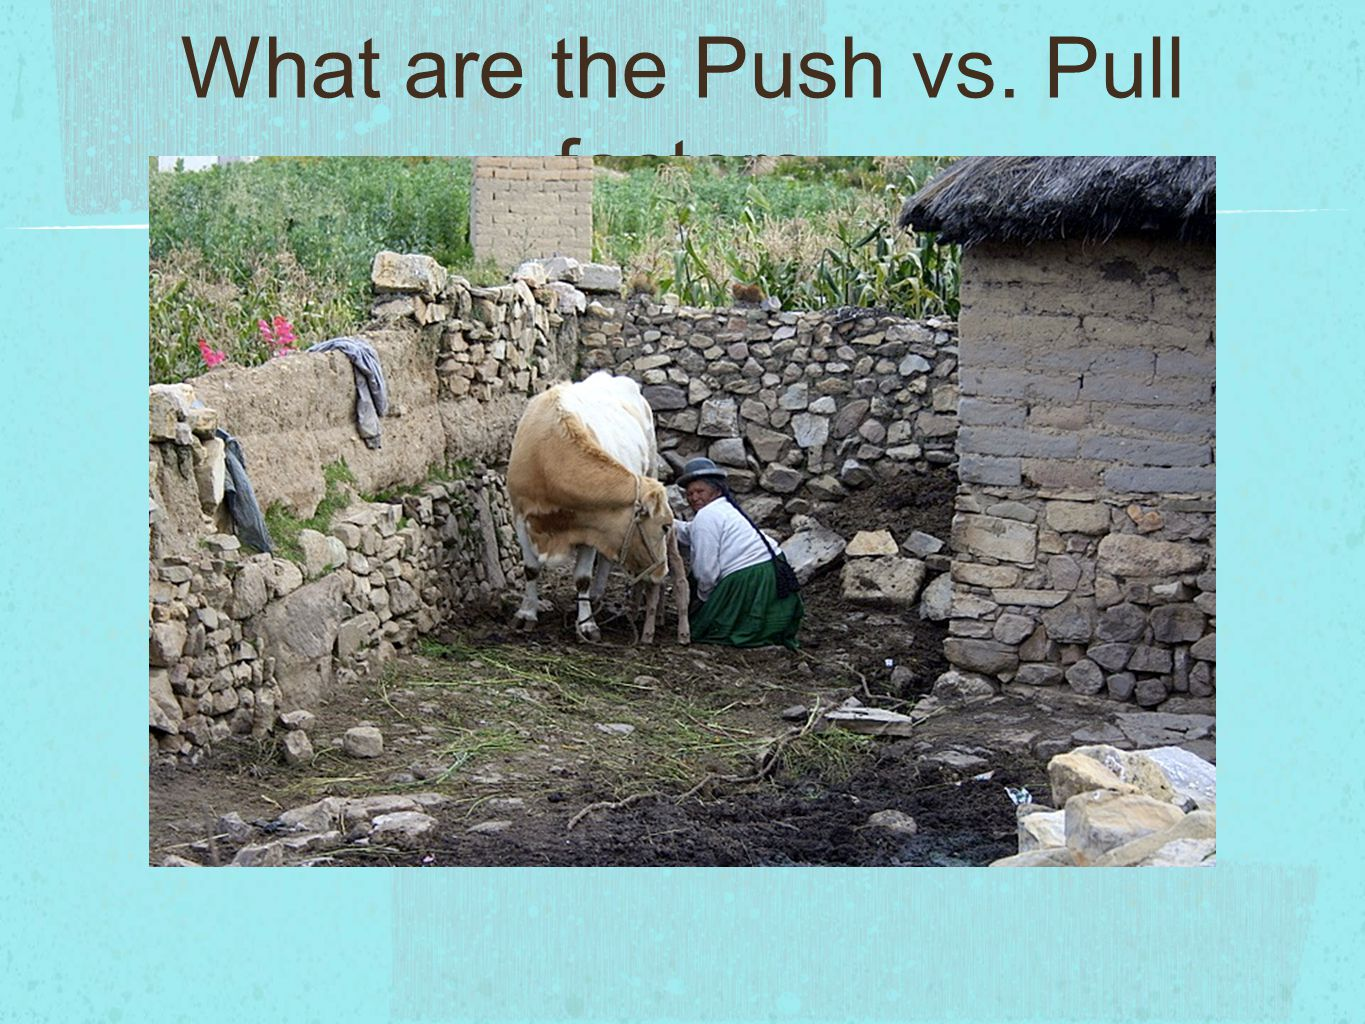 What are the Push vs. Pull factors